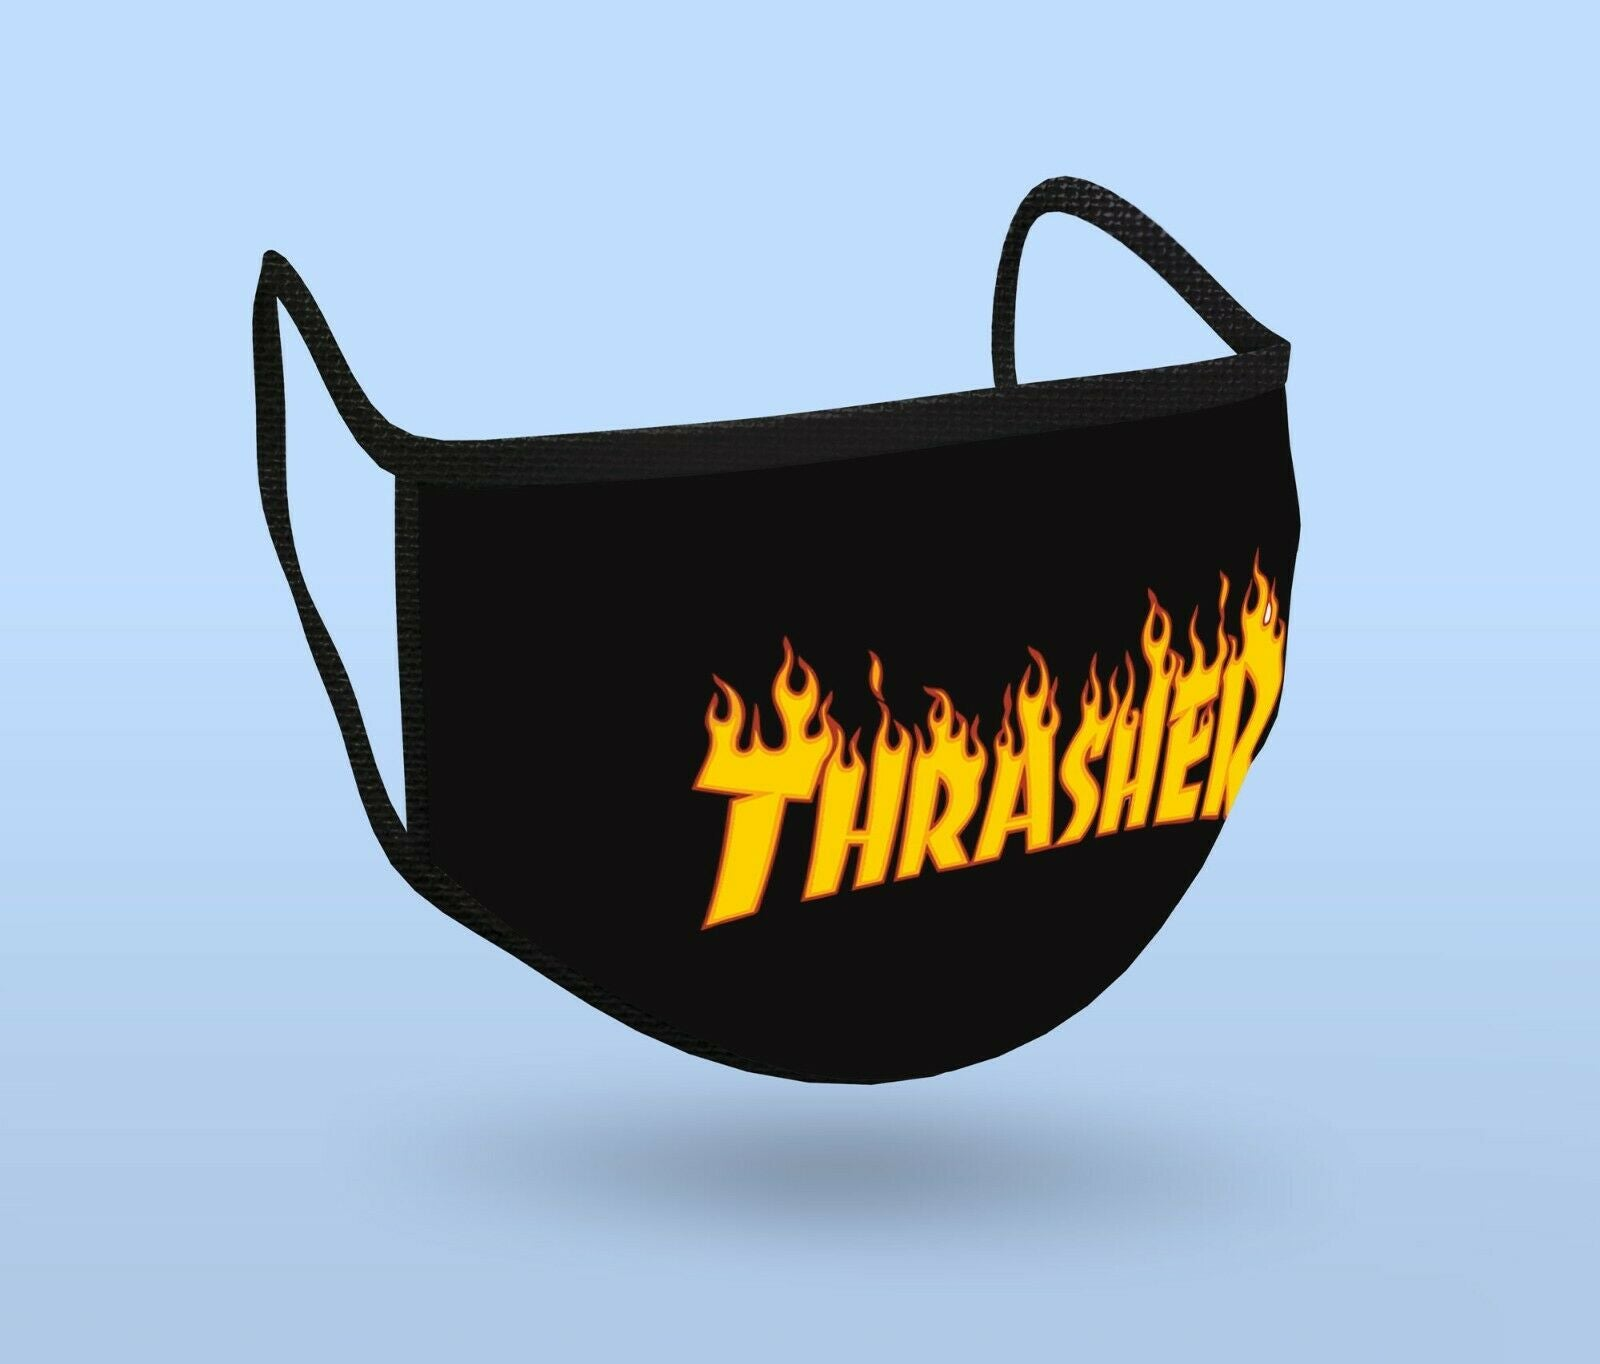 Thrasher backwoods fire custom washable reusable Cloth Fabric Mask Face cover